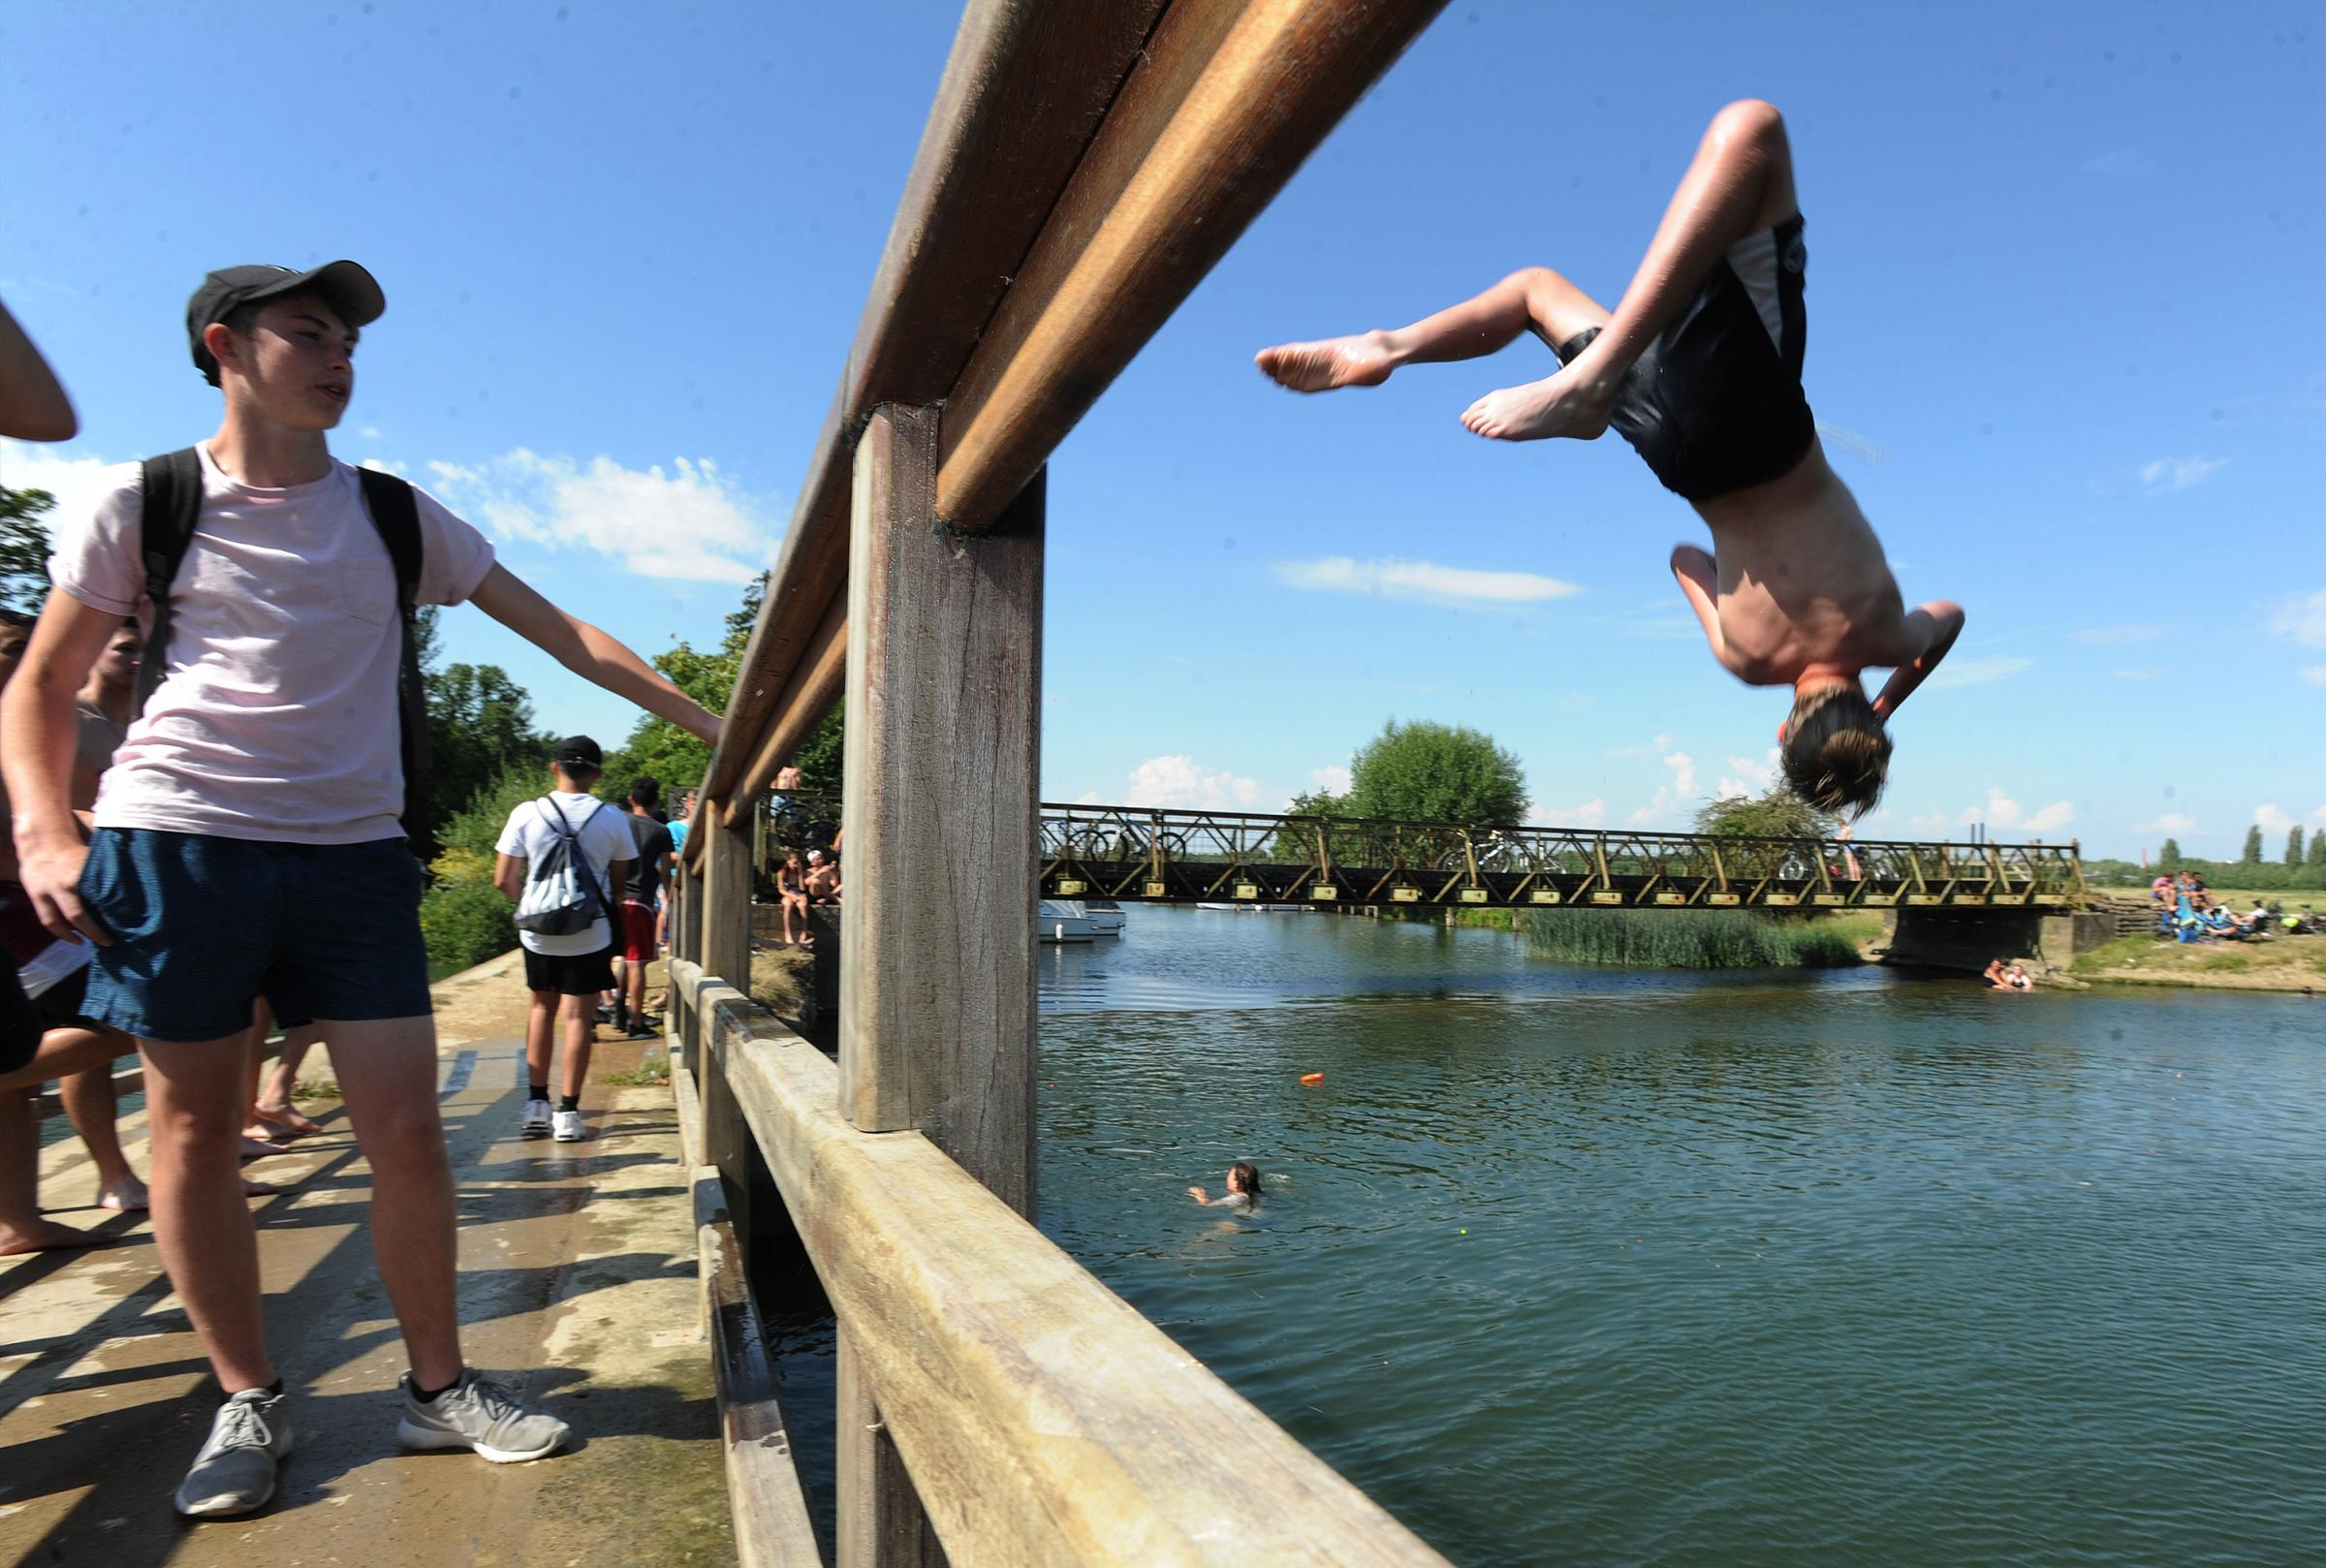 Youngsters jumping into the River Thames in Oxford in 2016. Pic: Jon Lewis